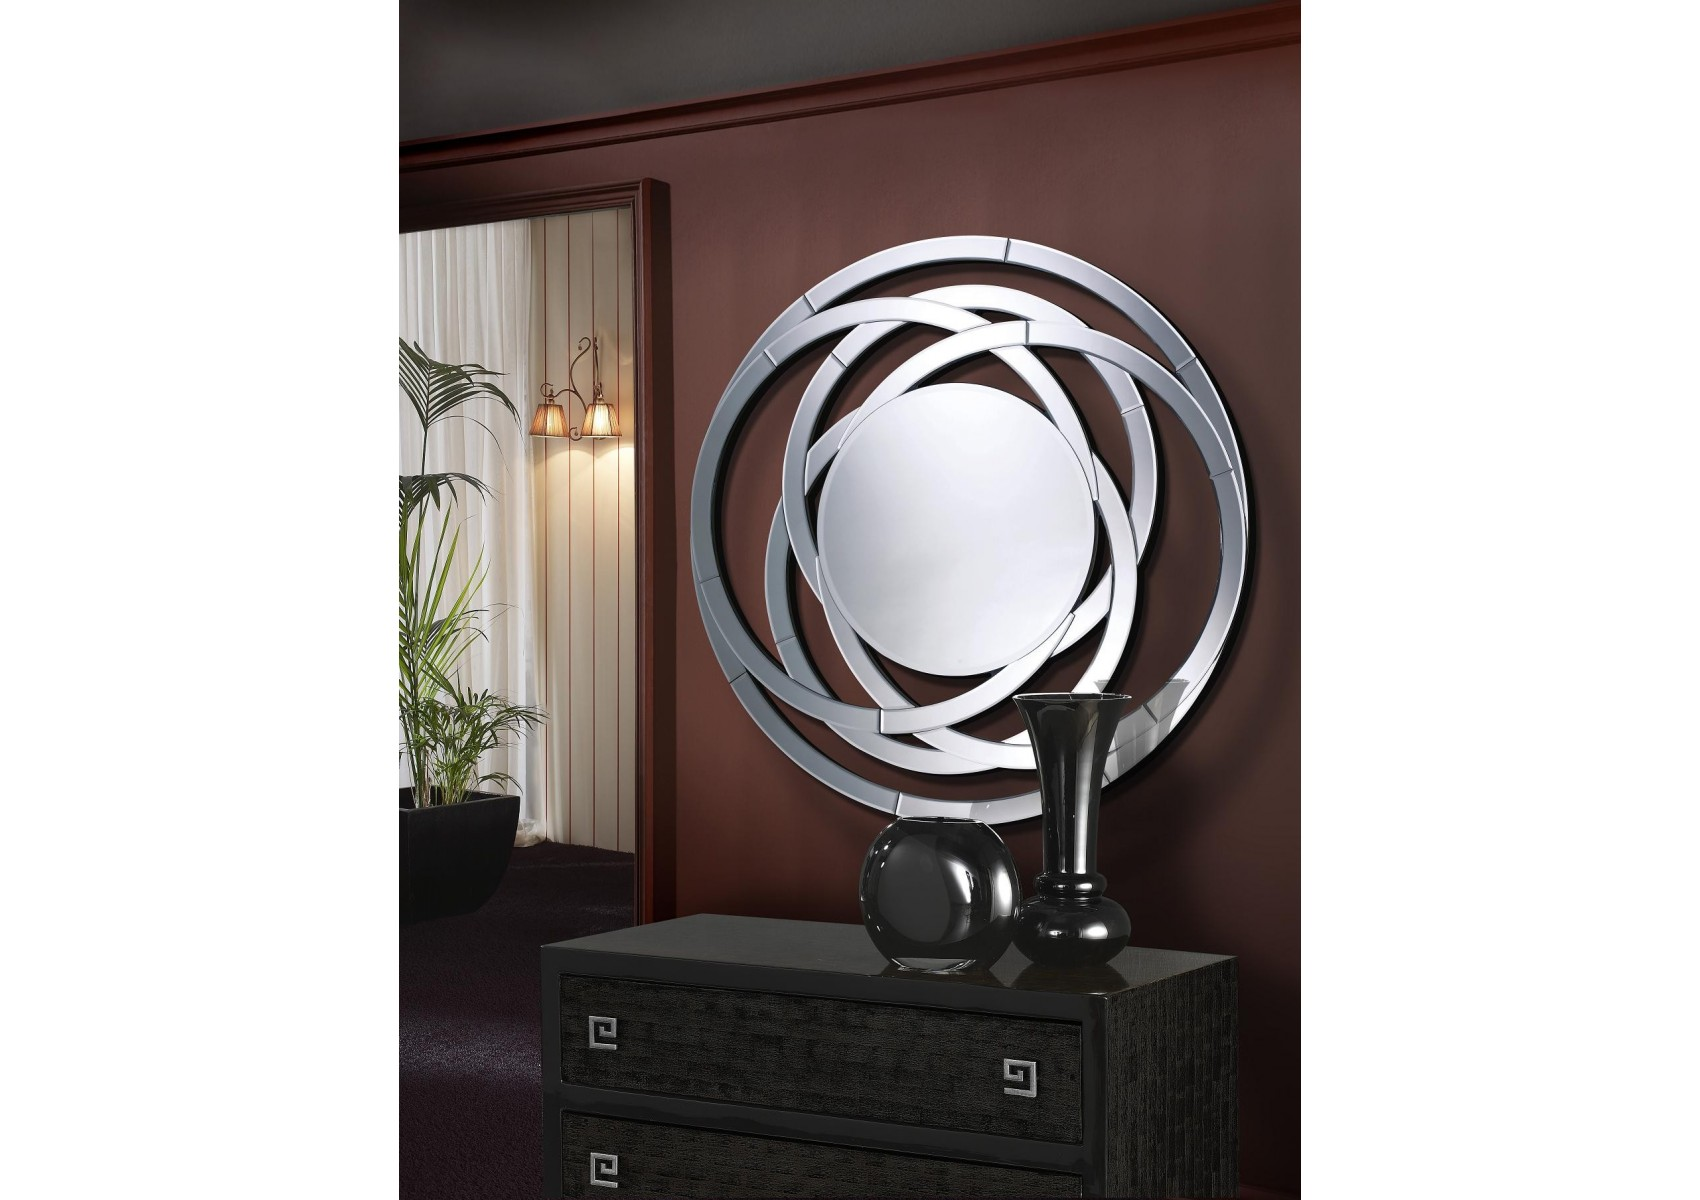 miroir rond design de la collection aros de chez schuller